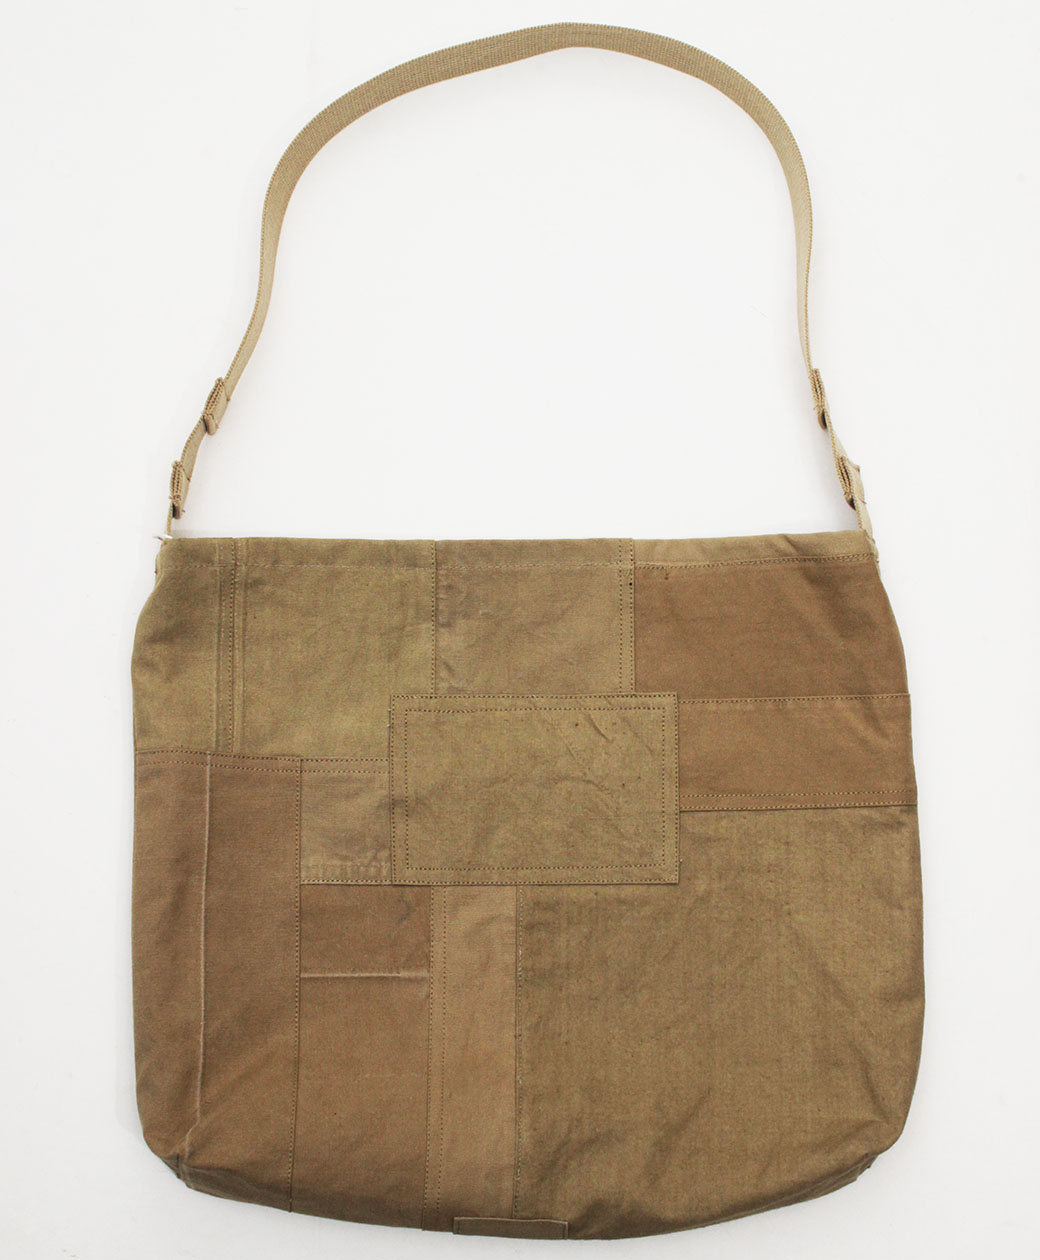 hobo COTTON FRENCH ARMY CLOTH PATCHWORK SHOULDER BAG(BEIGE)